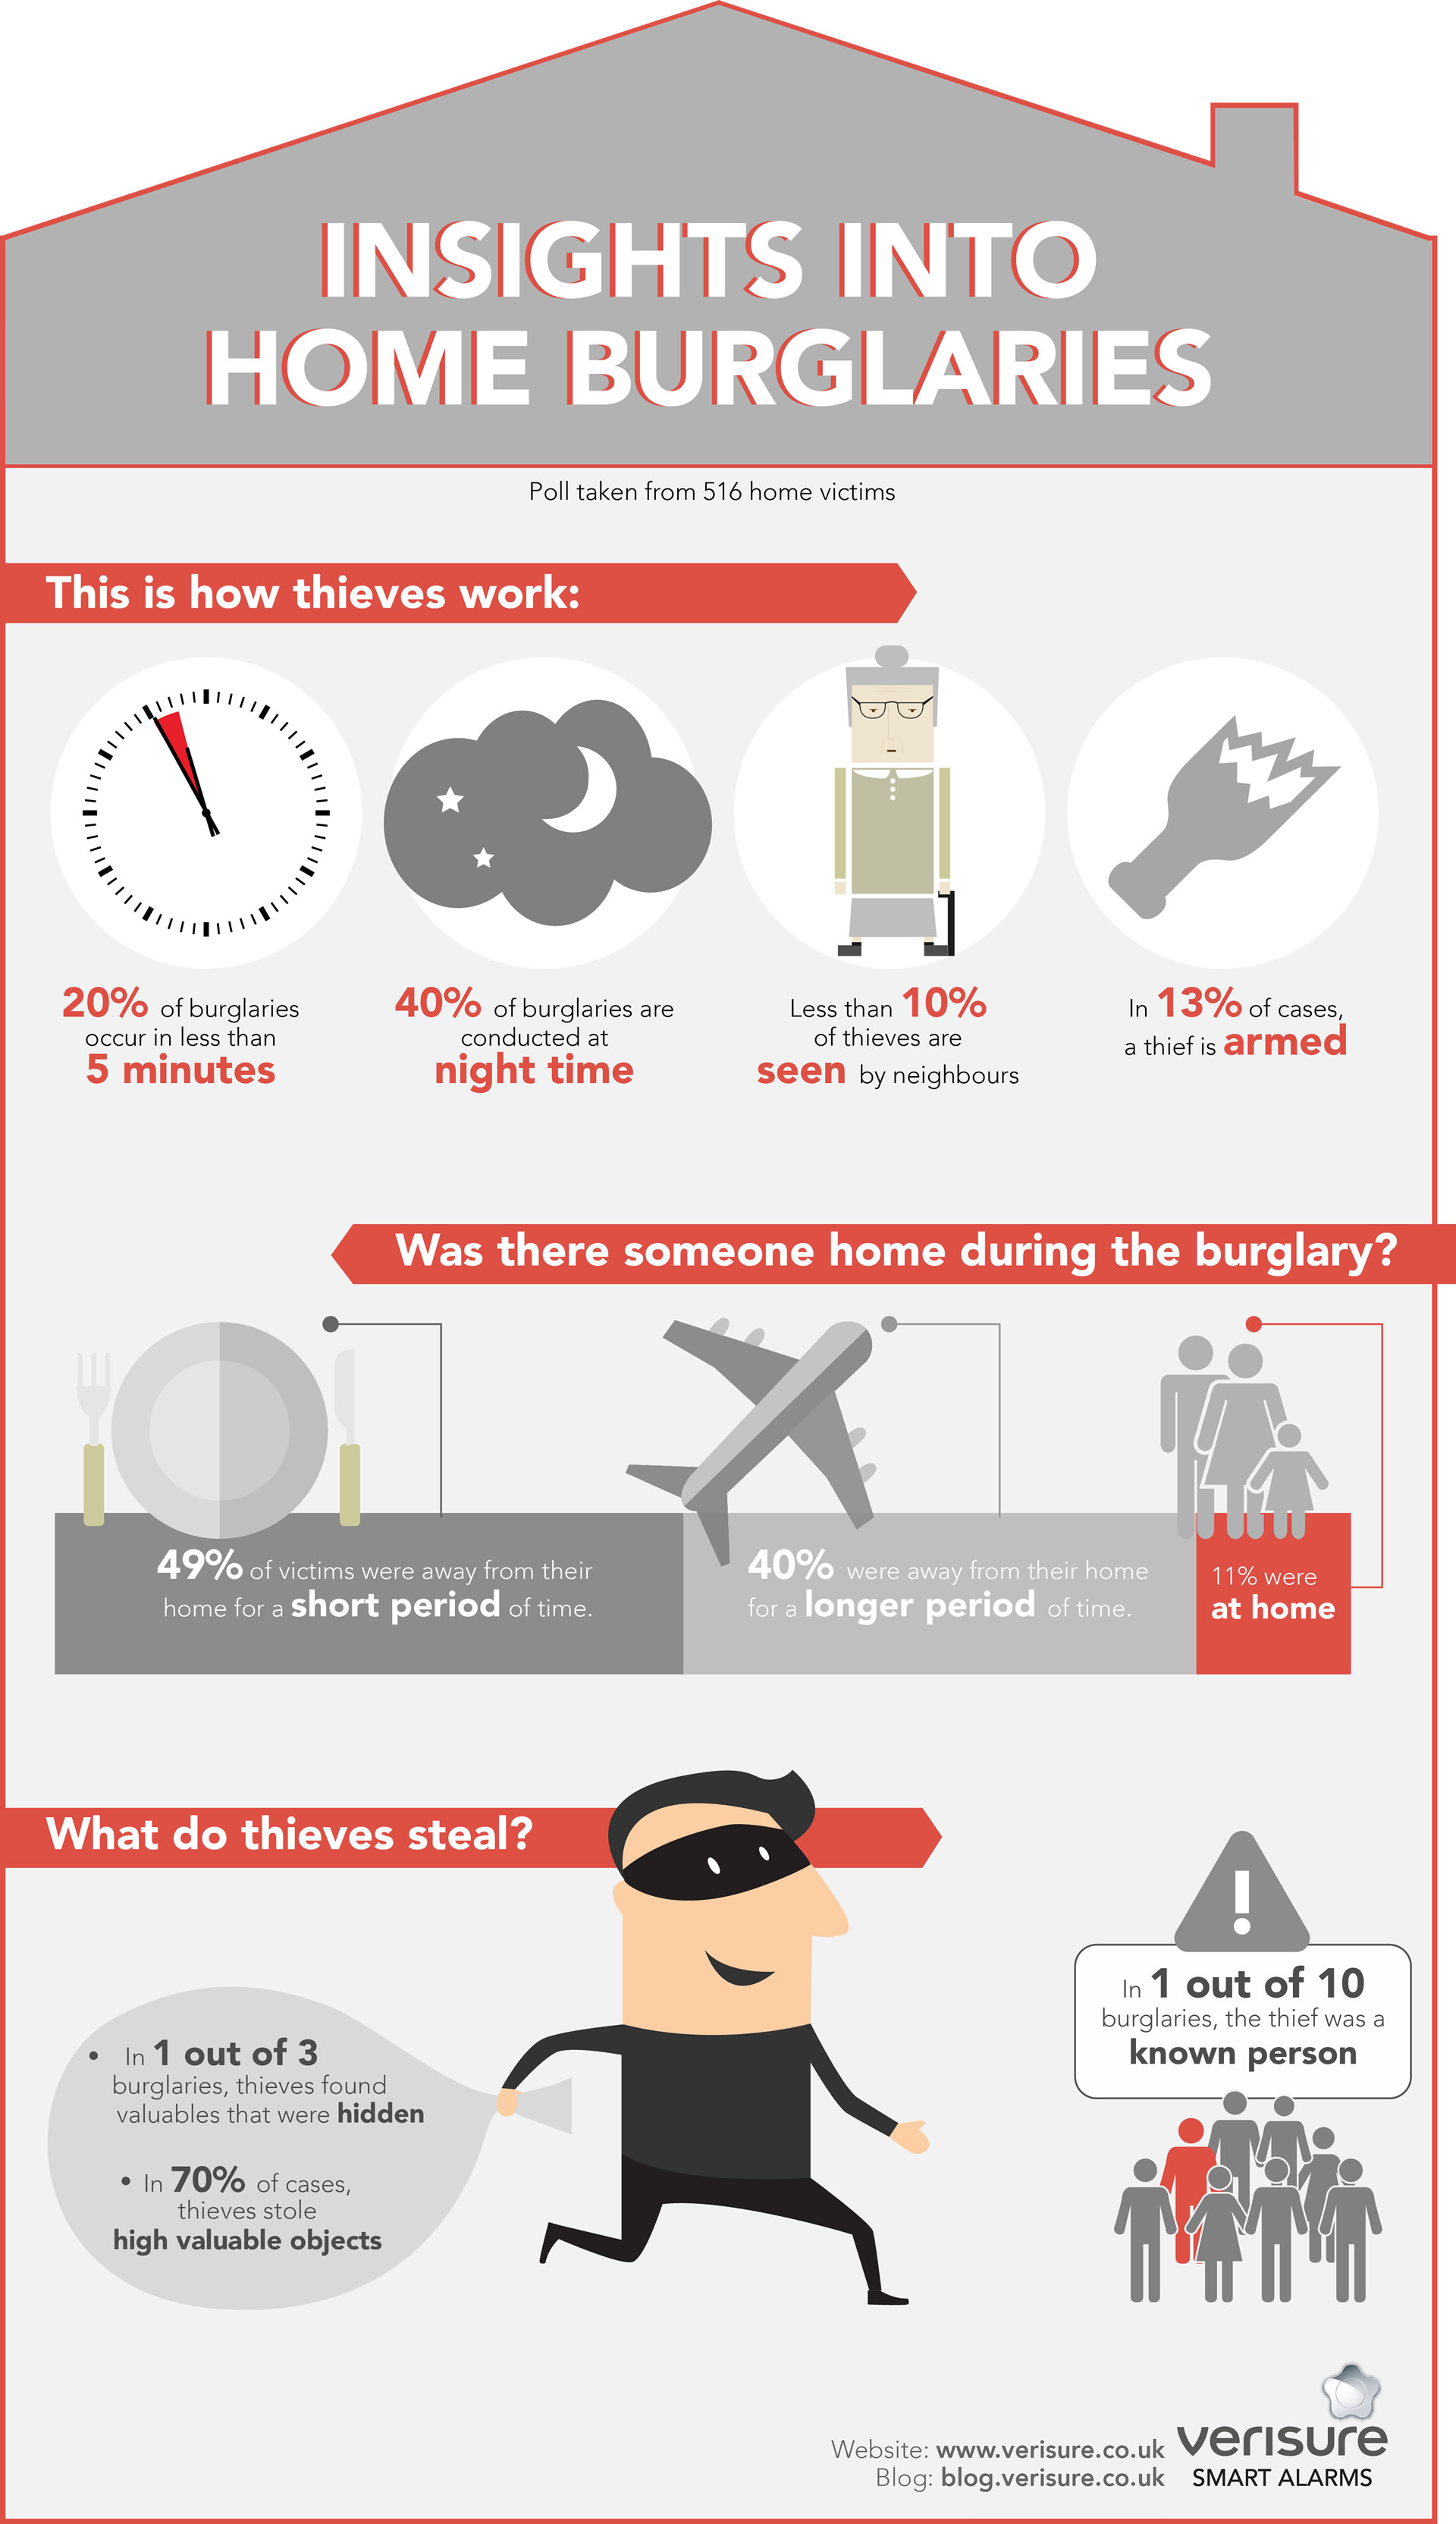 infographic showing insights into home burglaries